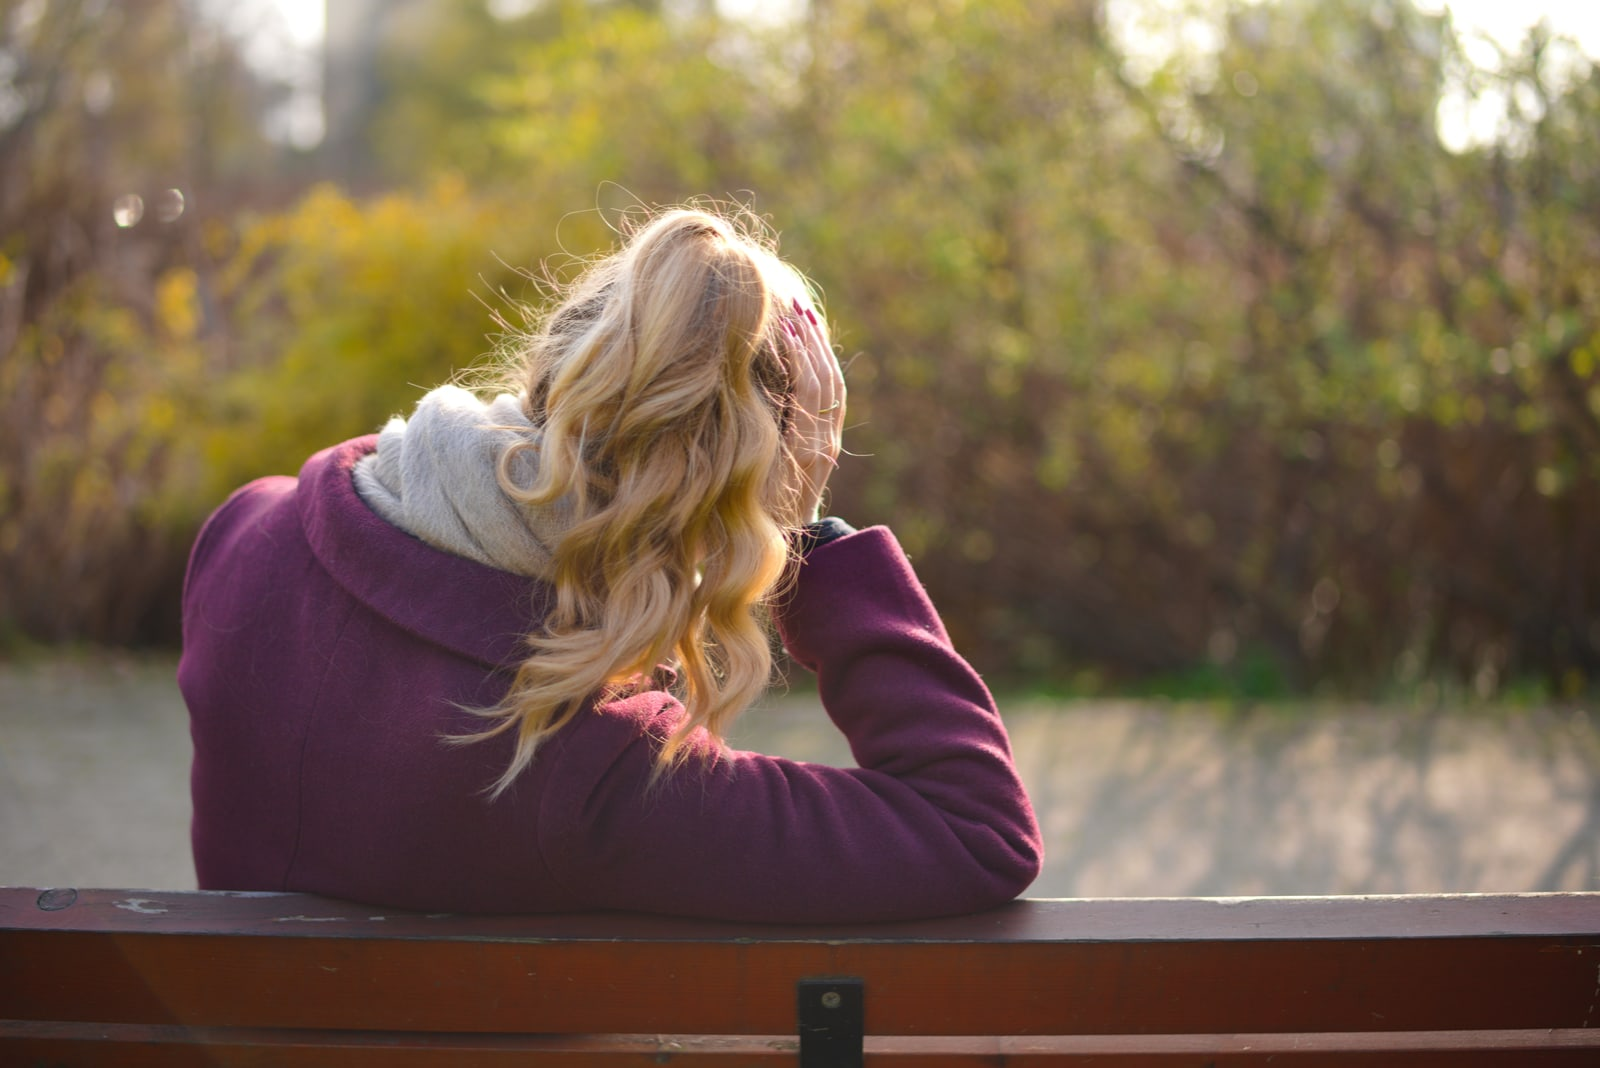 woman with blond hair sitting on a bench in the park